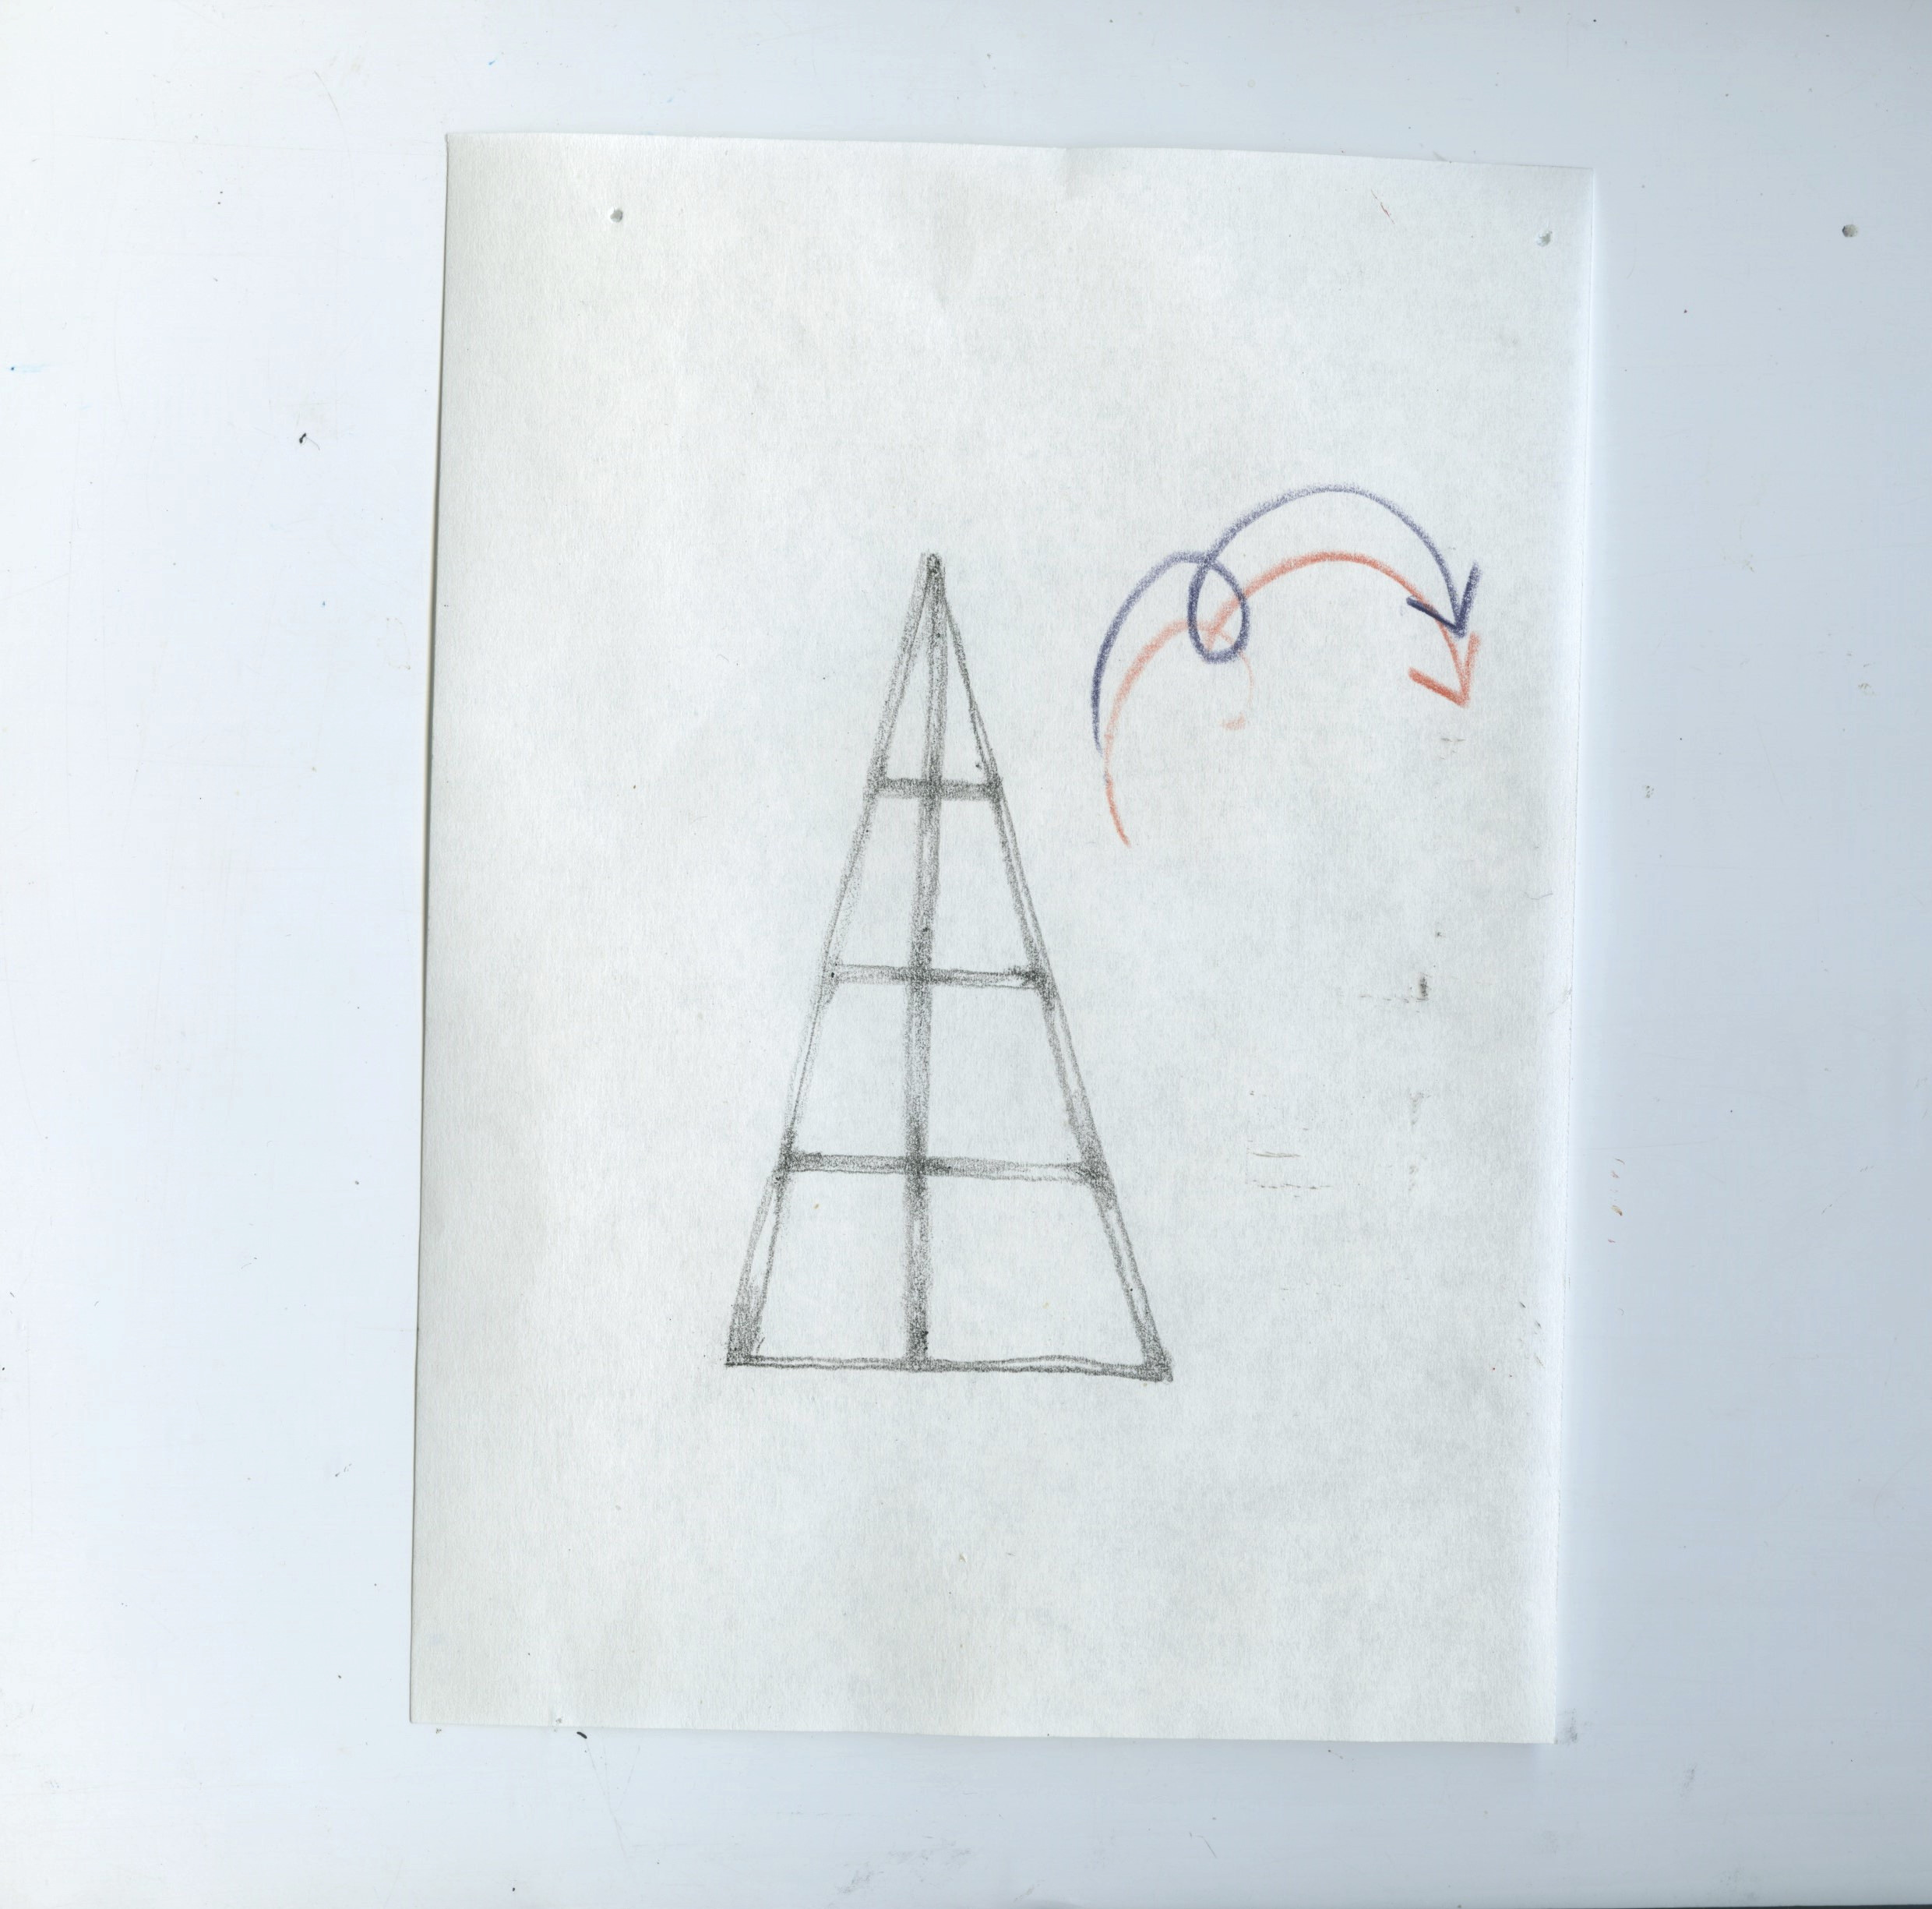 Scanned sheet of Bible paper with a pencil drawing of a triangular widow with 8 segments. Two arrows (red and indigo) point away from the triangle and downwards, looped in the middle.